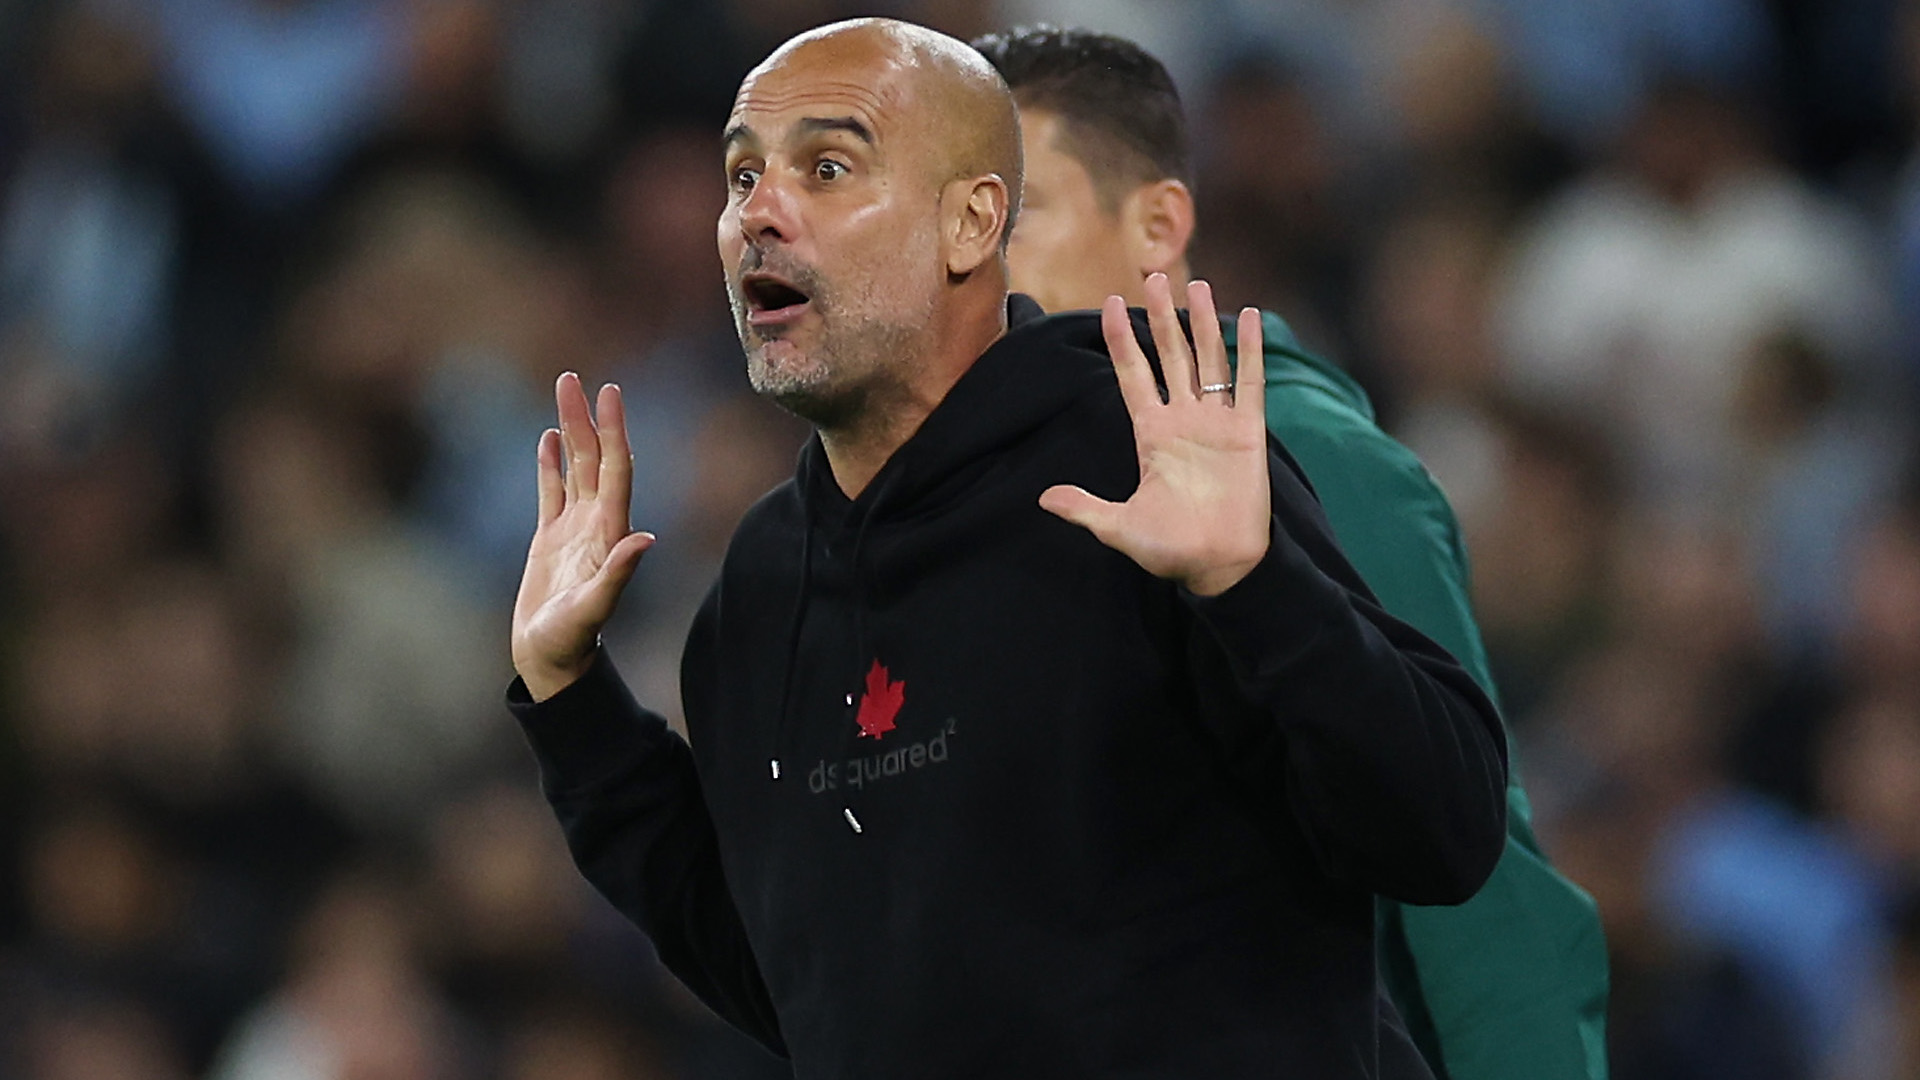 Guardiola turns to young players as Manchester City are hit by injury crisis